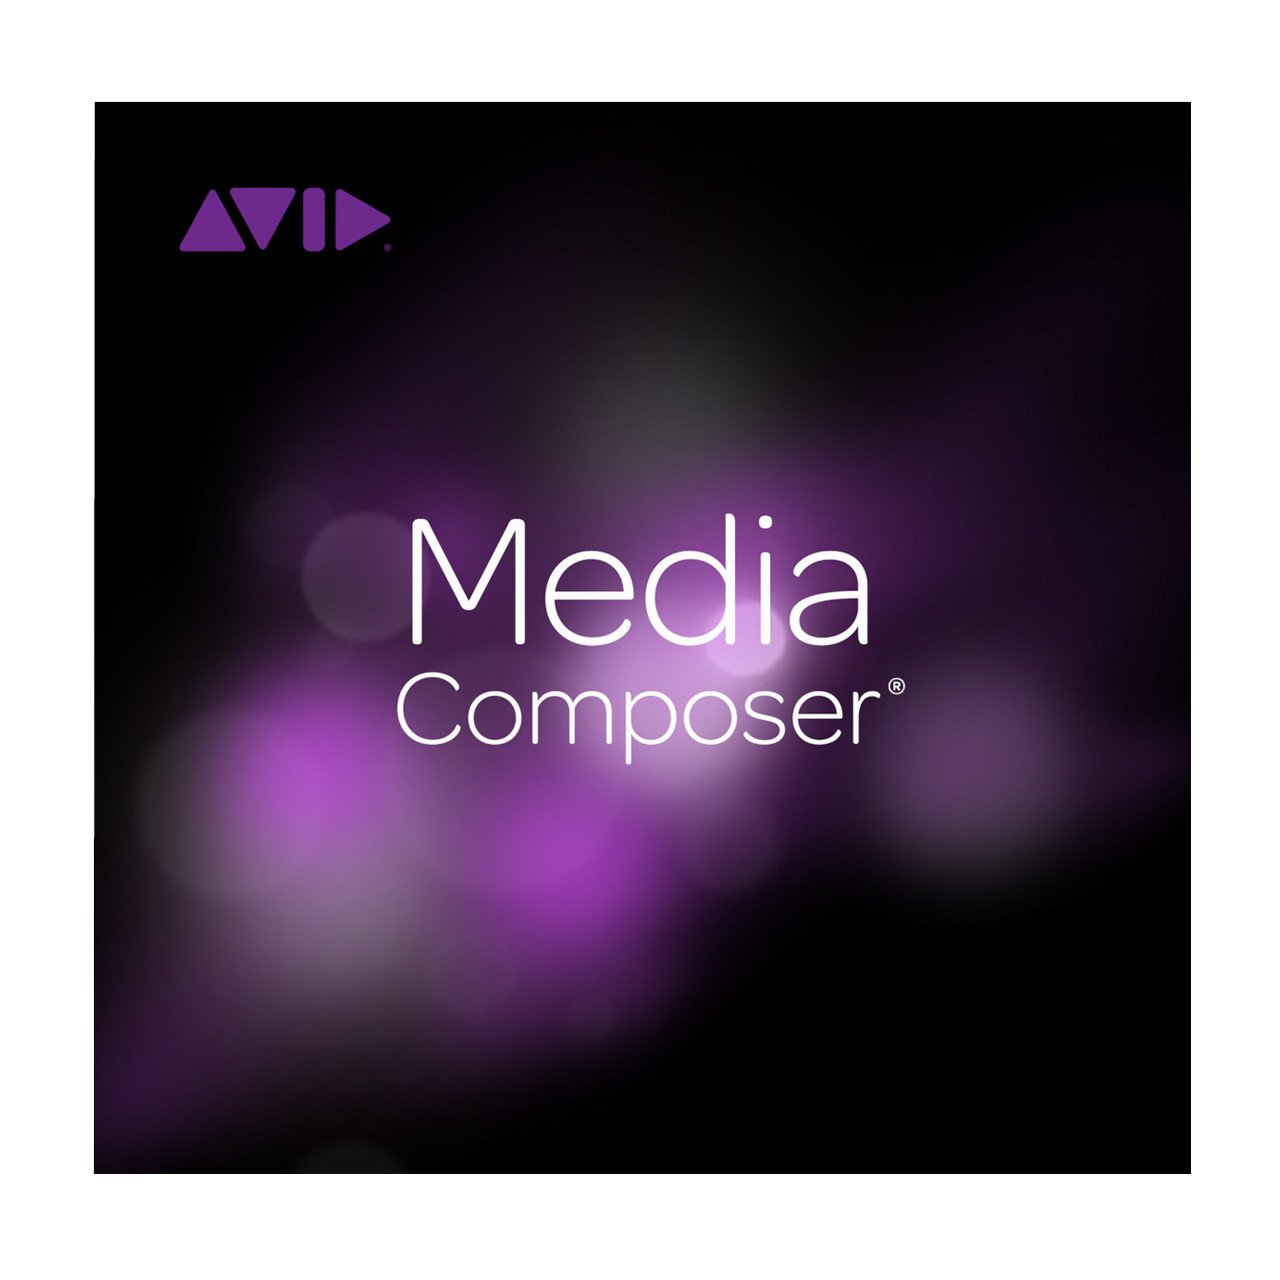 AVID Media Composer Video Editing Software Annual Subscription